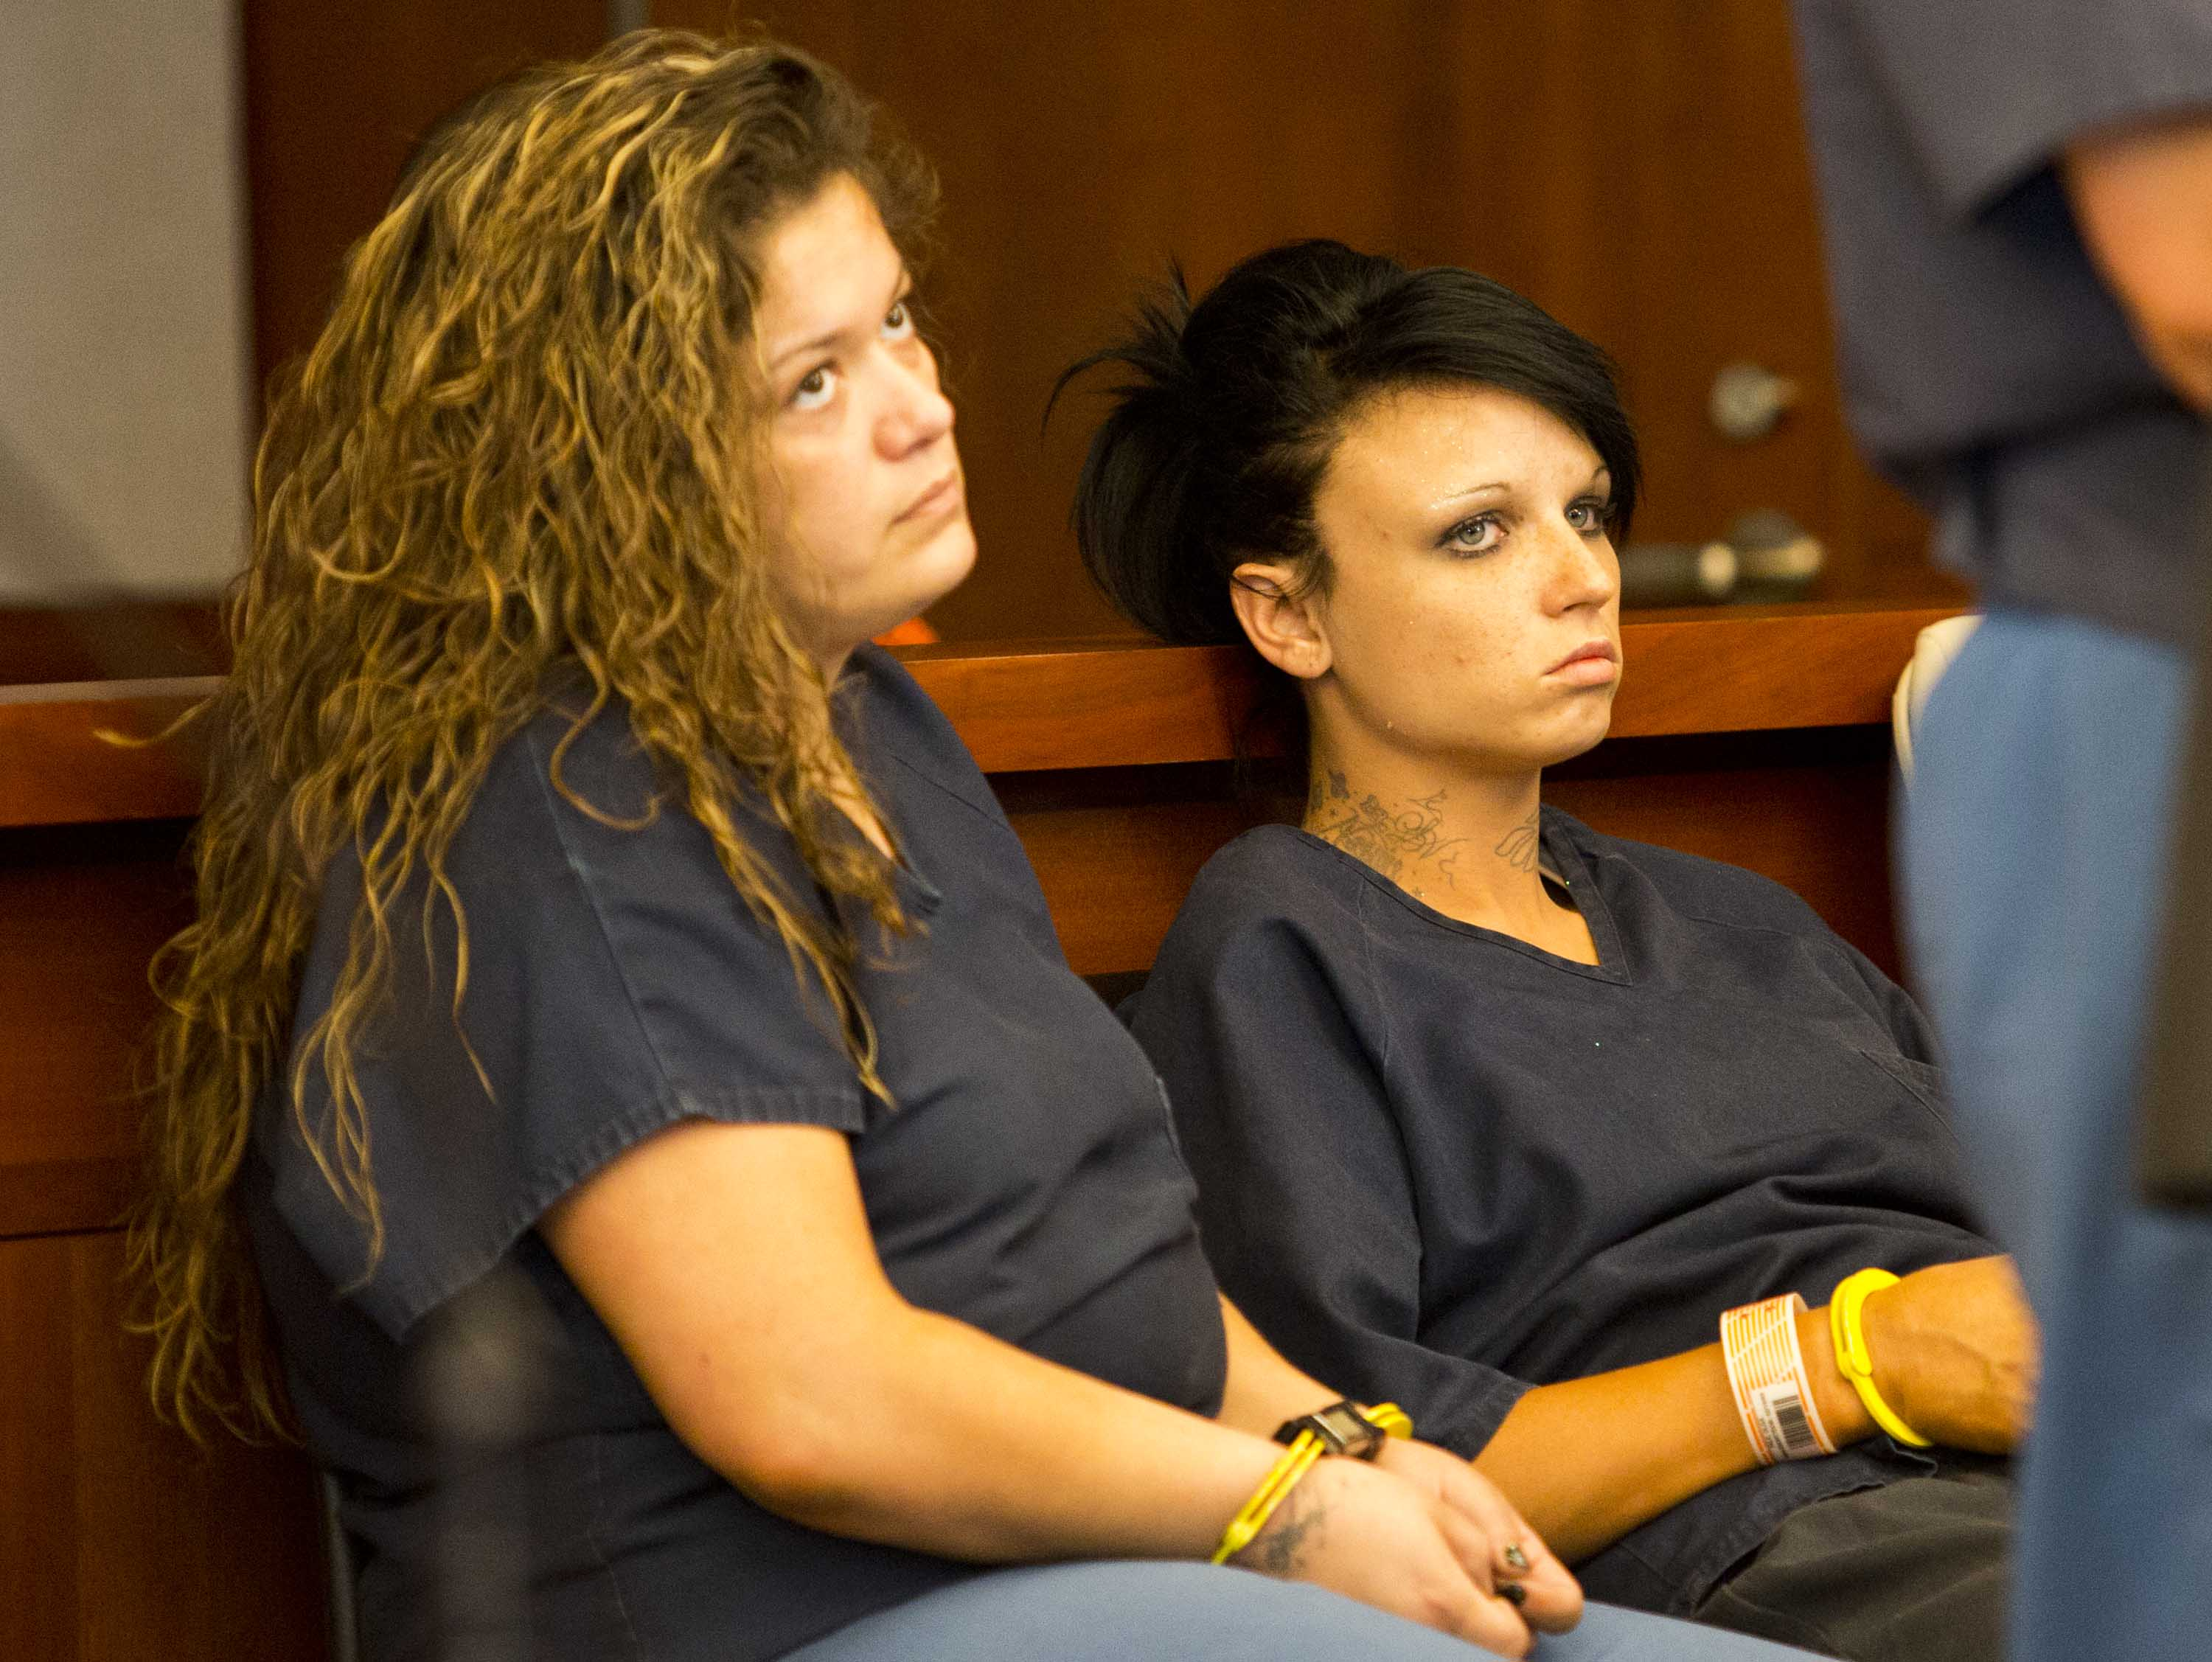 Barber Utah County : Brandi Barber, left, and Olga Falk wait for initial appearances. Falk ...